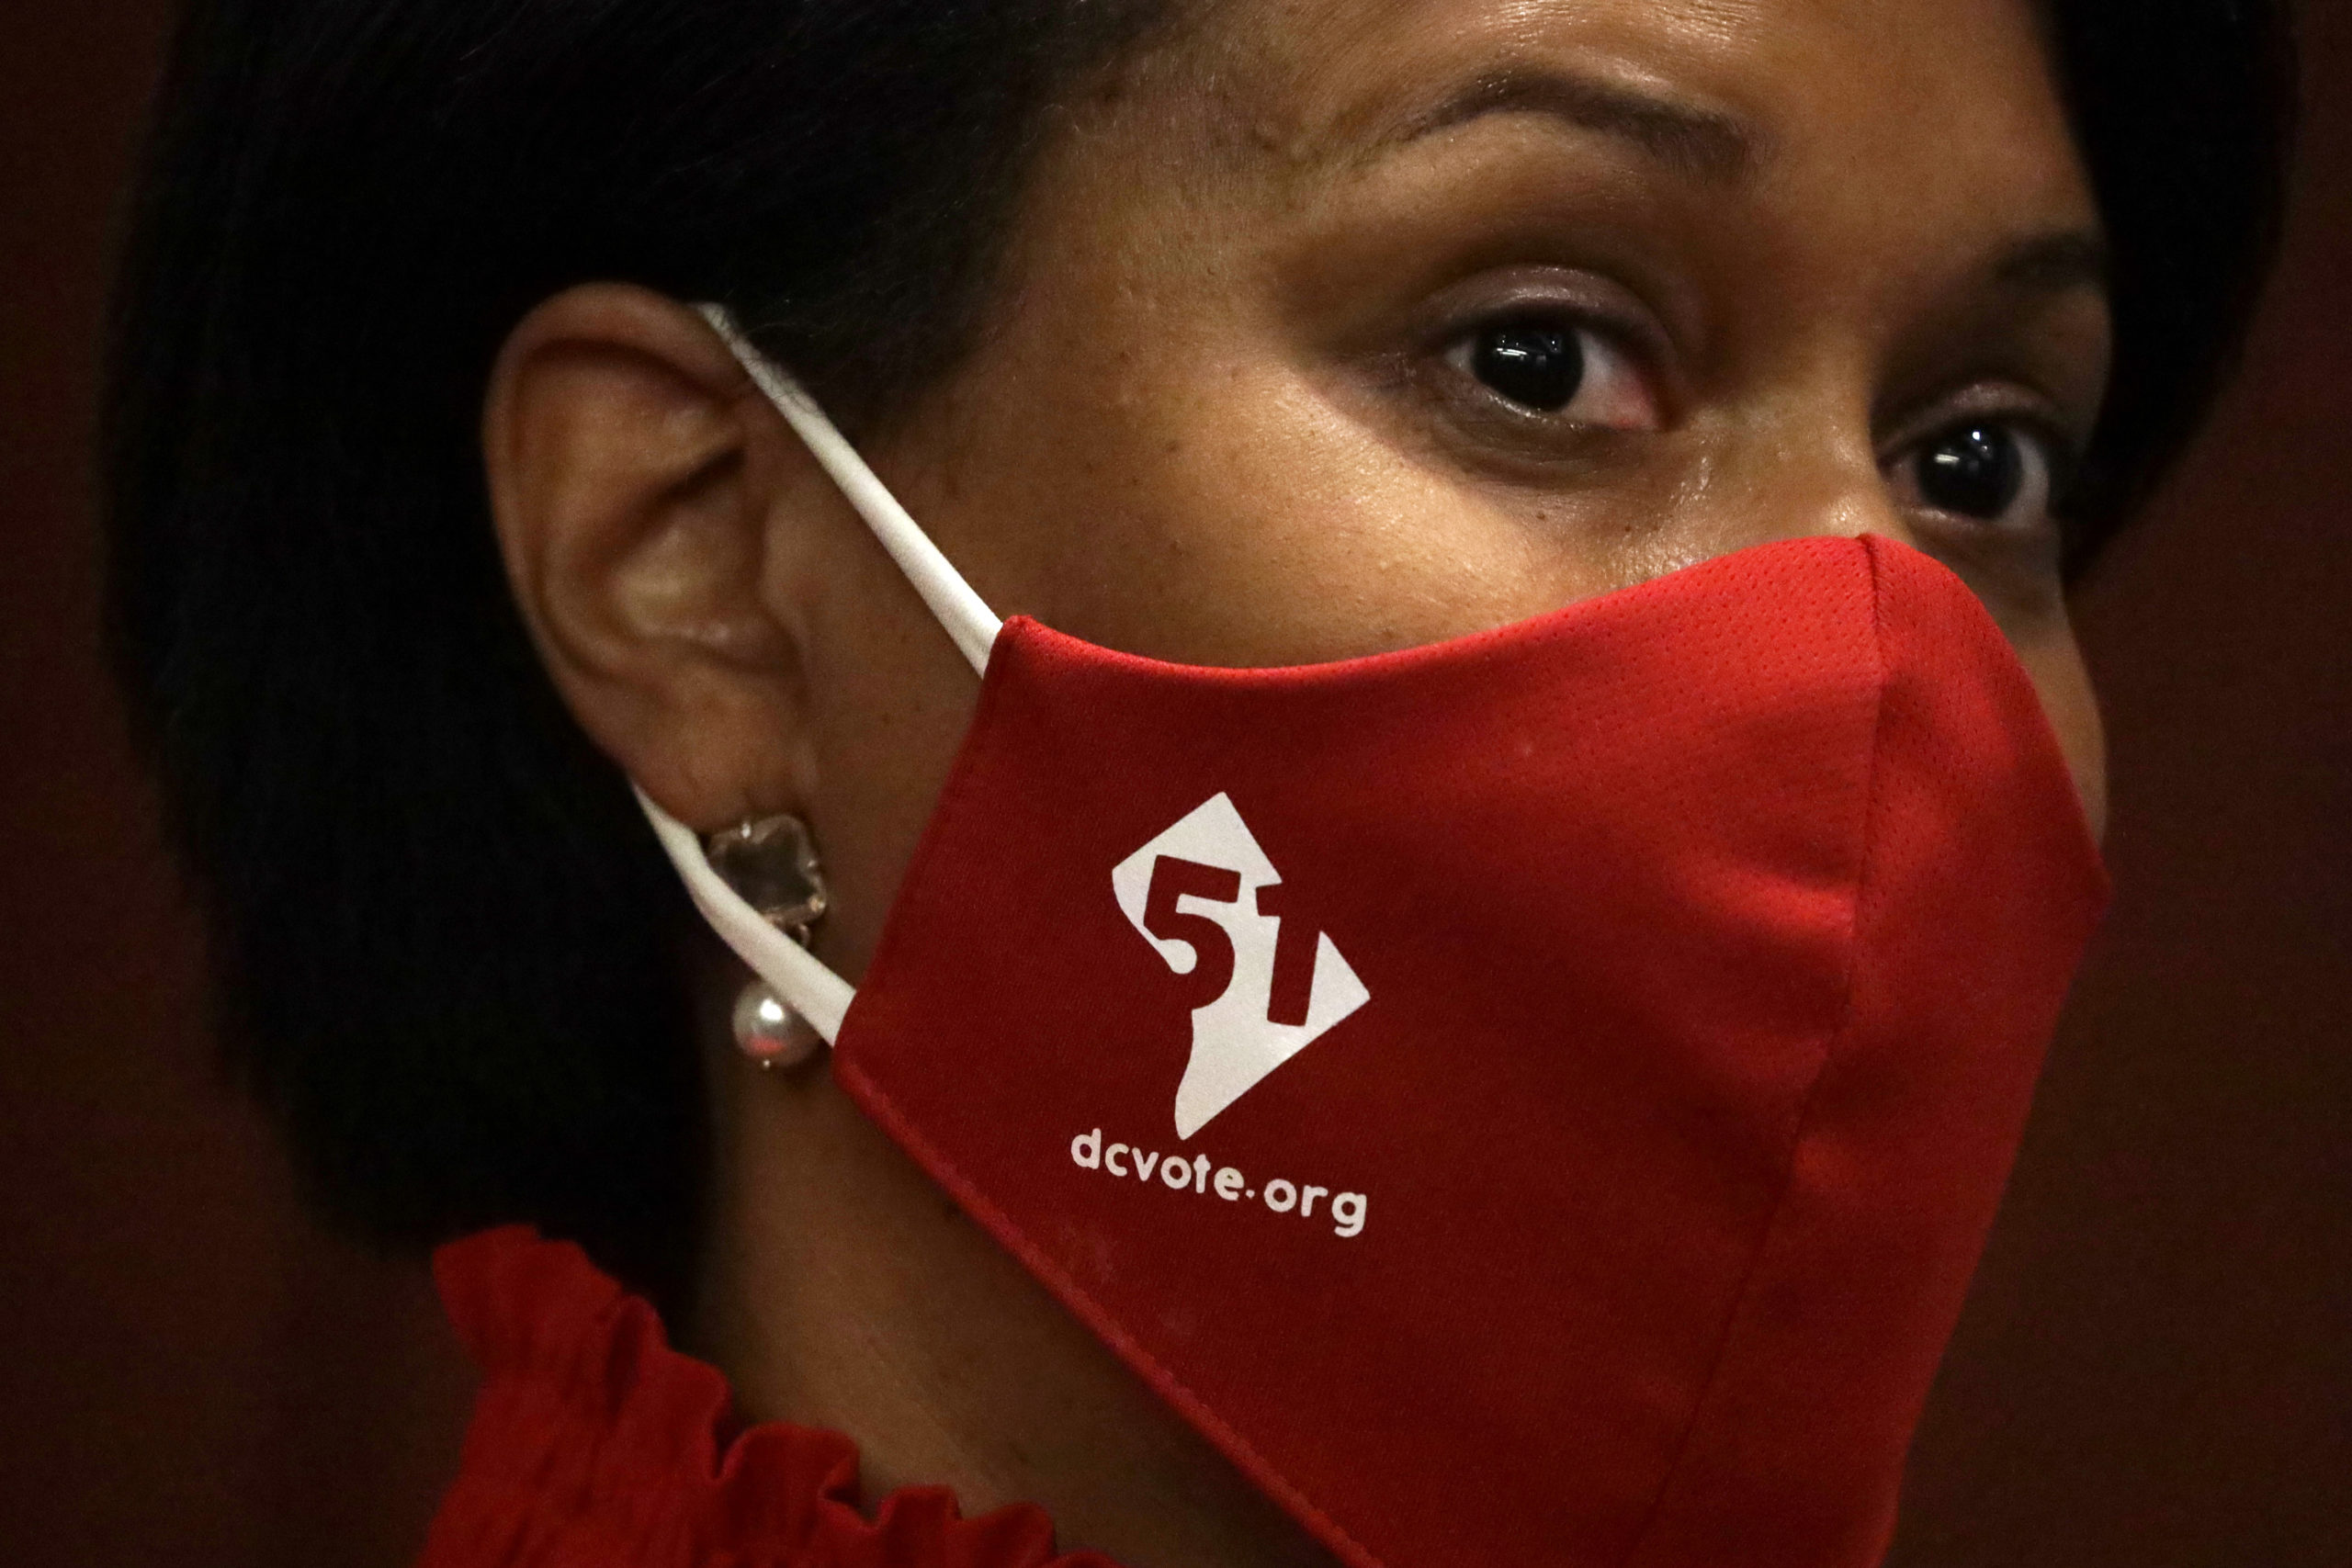 WASHINGTON, DC - JUNE 25: DC Mayor Muriel Bowser wears a DC Vote mask during a news conference on District of Columbia statehood June 25, 2020 on Capitol Hill in Washington, DC. The House is scheduled to vote on the District of Columbia statehood bill tomorrow. (Photo by Alex Wong/Getty Images)